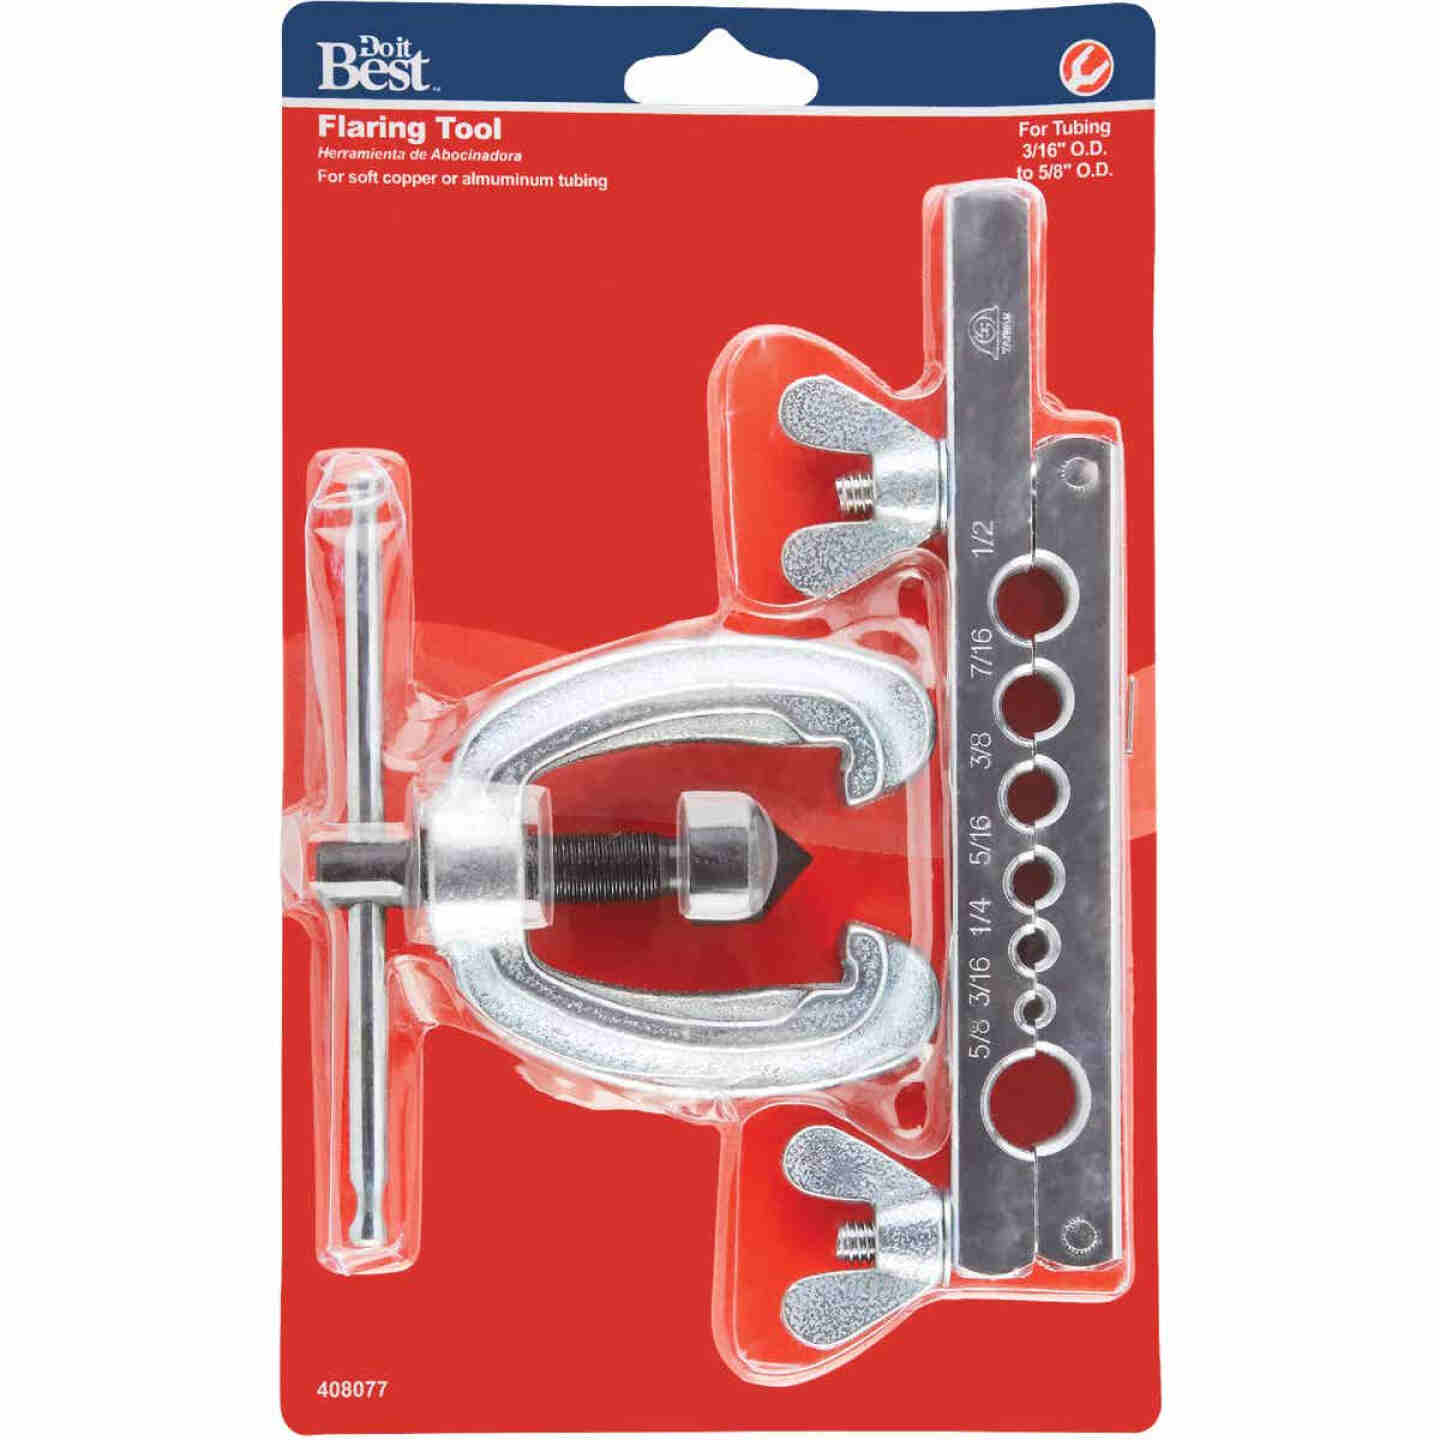 Do it SAE 45 Flare T-handle Flaring Tool, 3/16 In. to 5/8 In Image 2